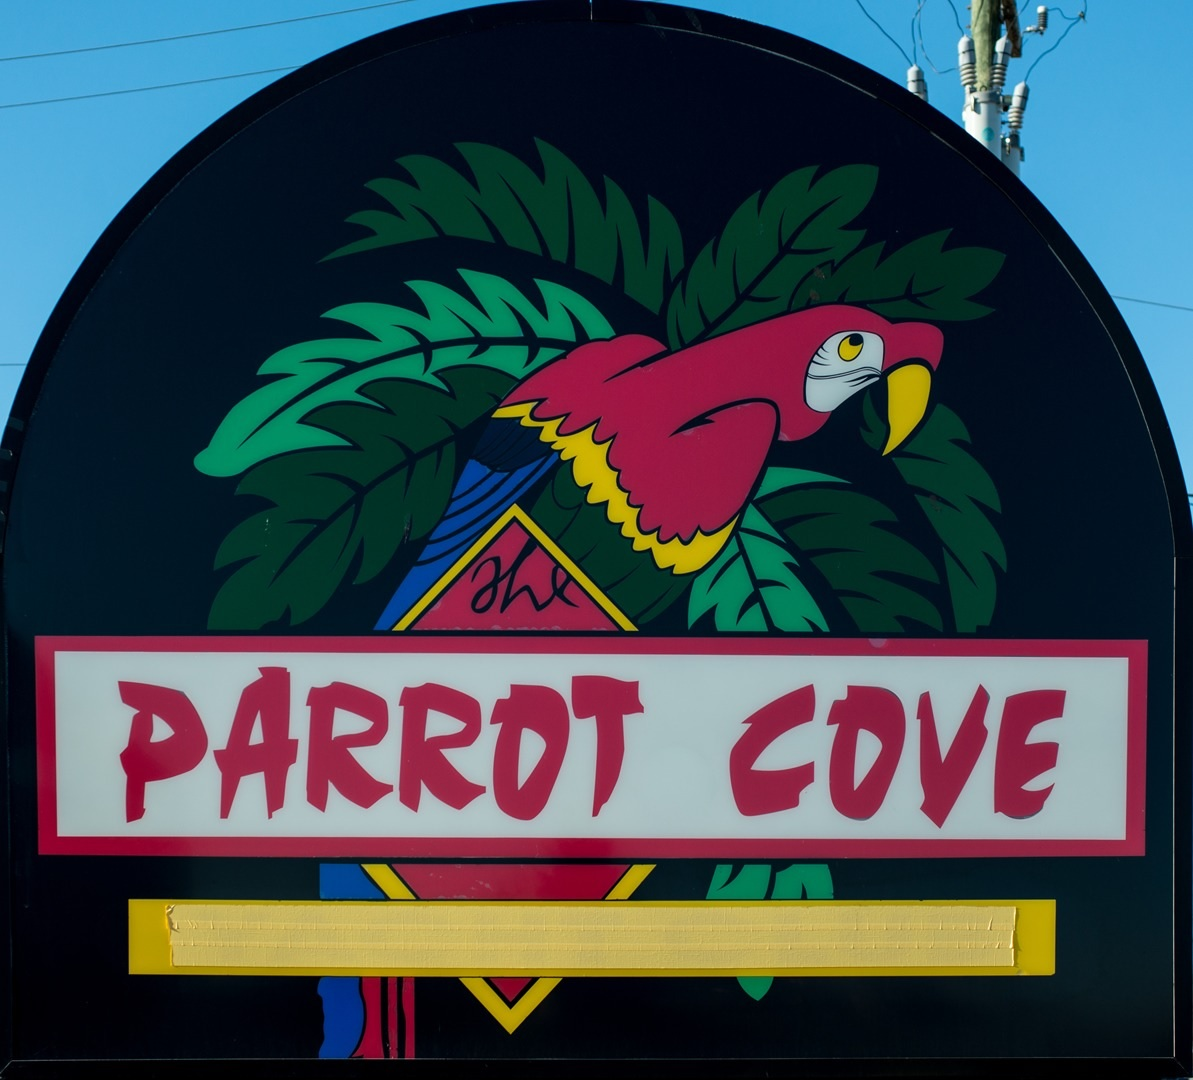 Parrot Cove Bar & Grill